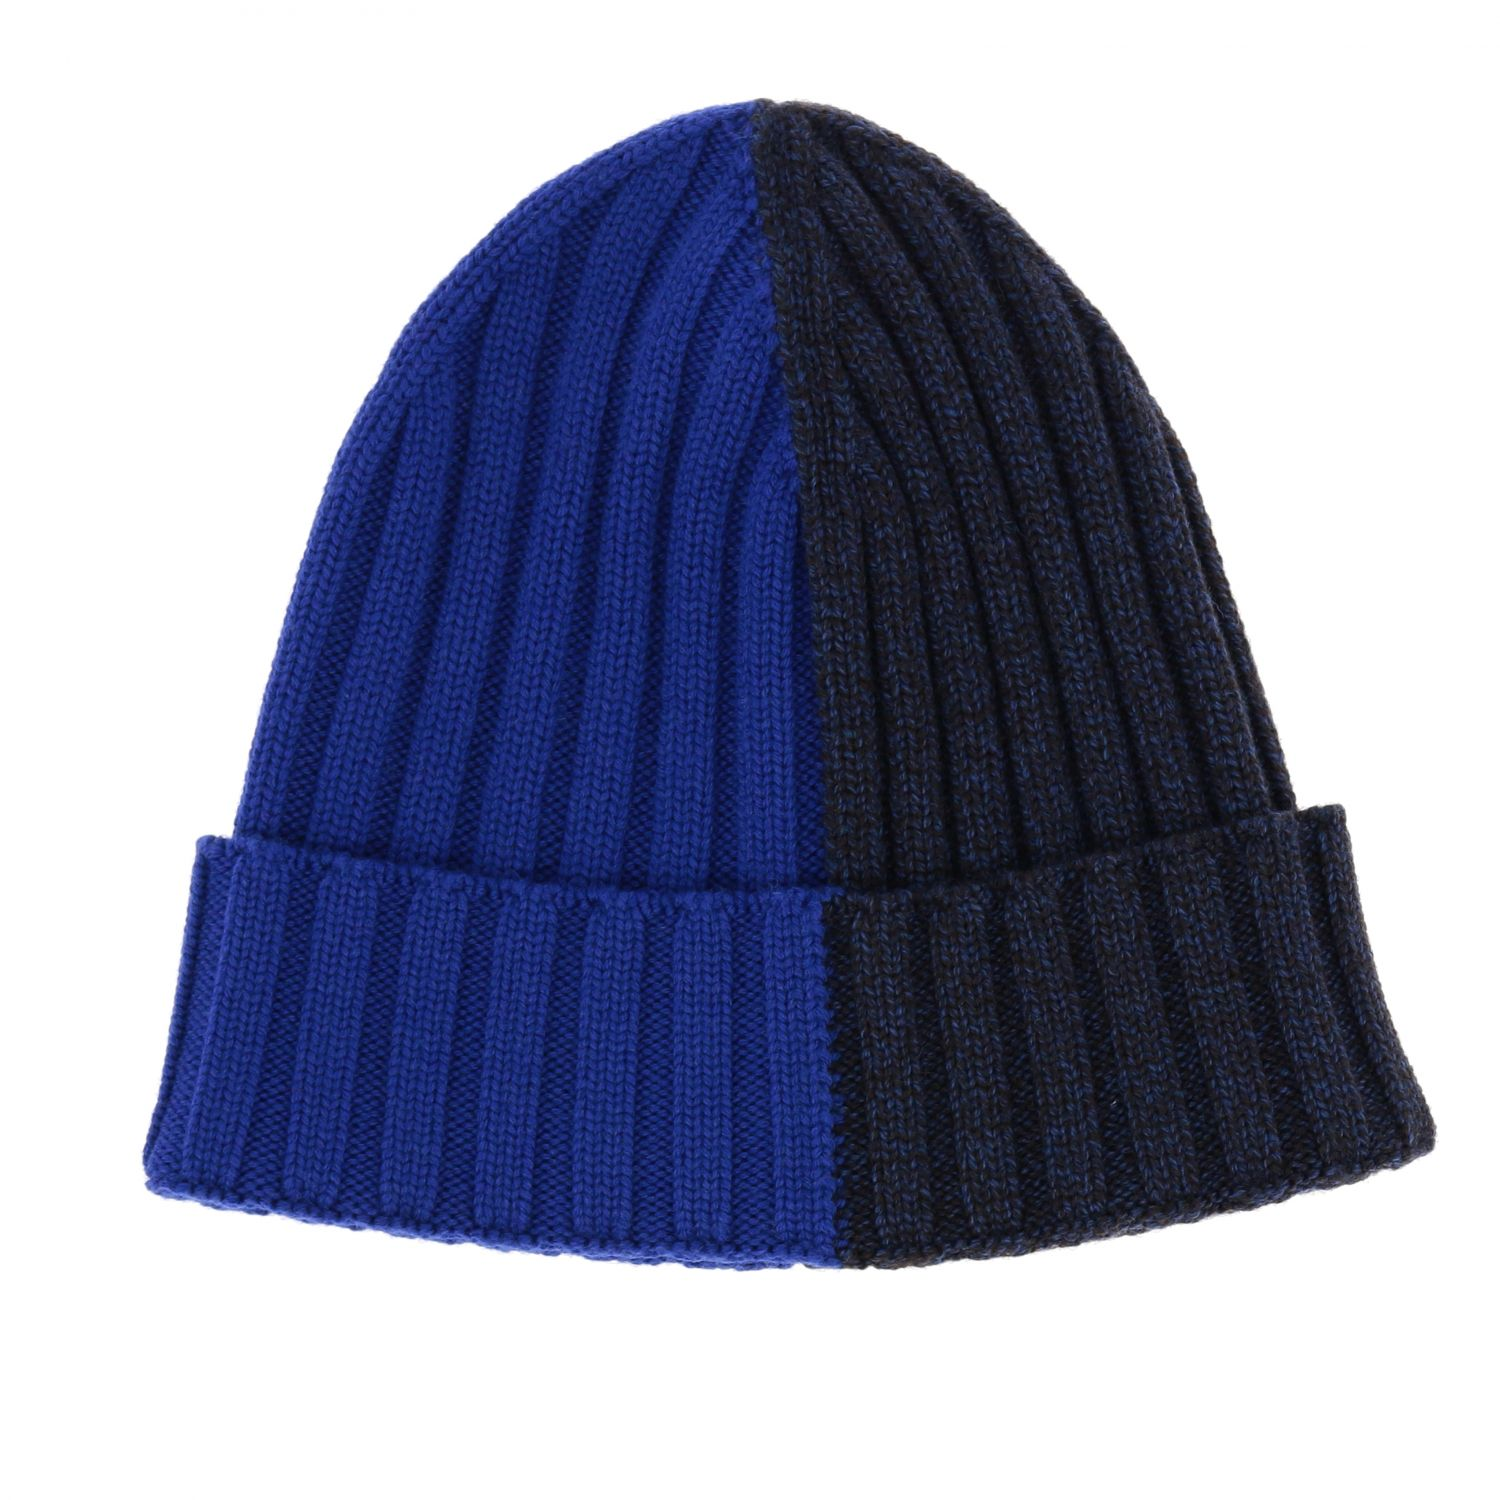 Cappello Woolrich effetto bicolor a coste blue 1